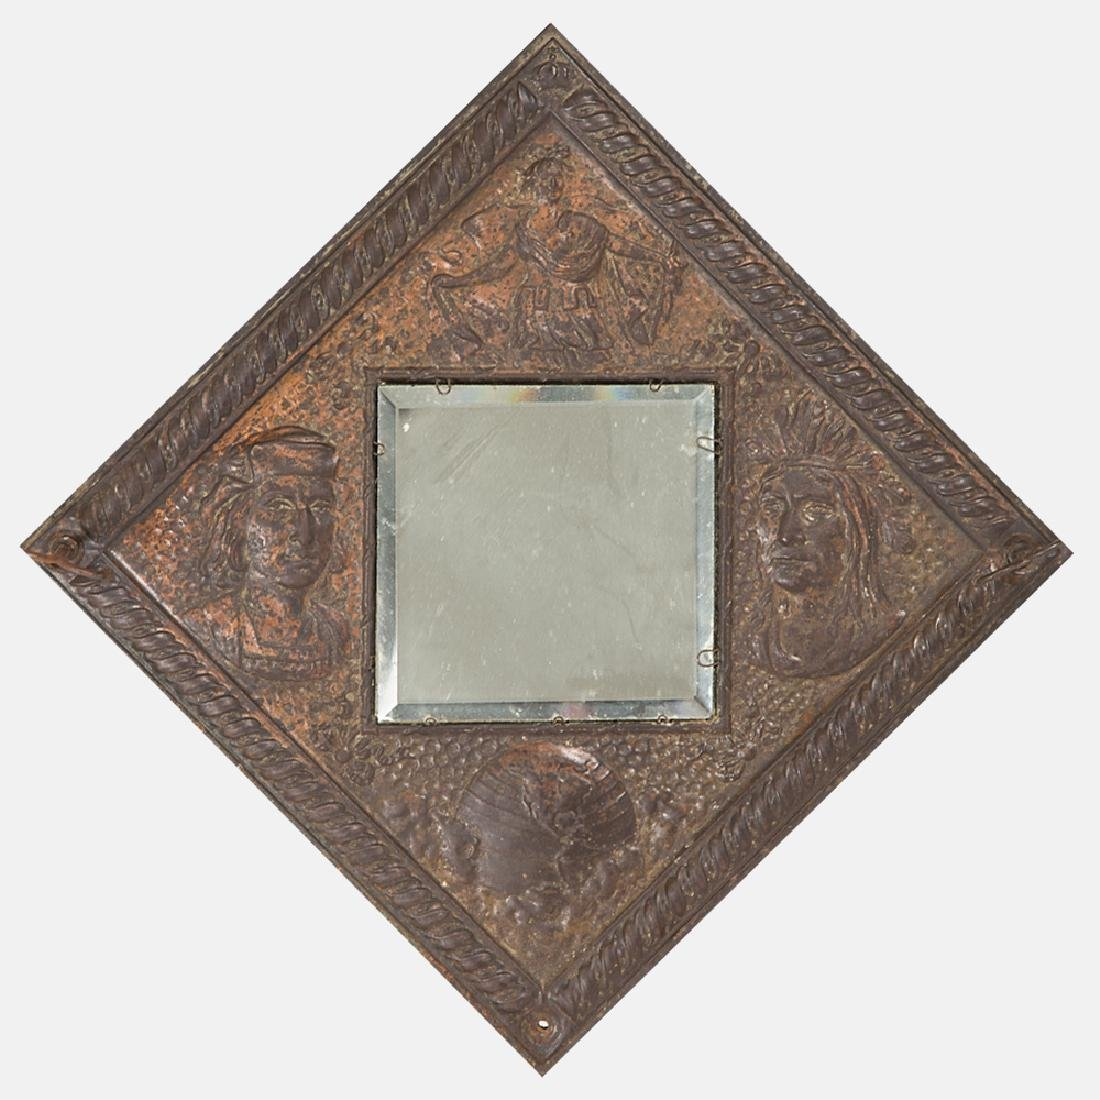 A Copper and Copper Plated Hanging Mirror from the